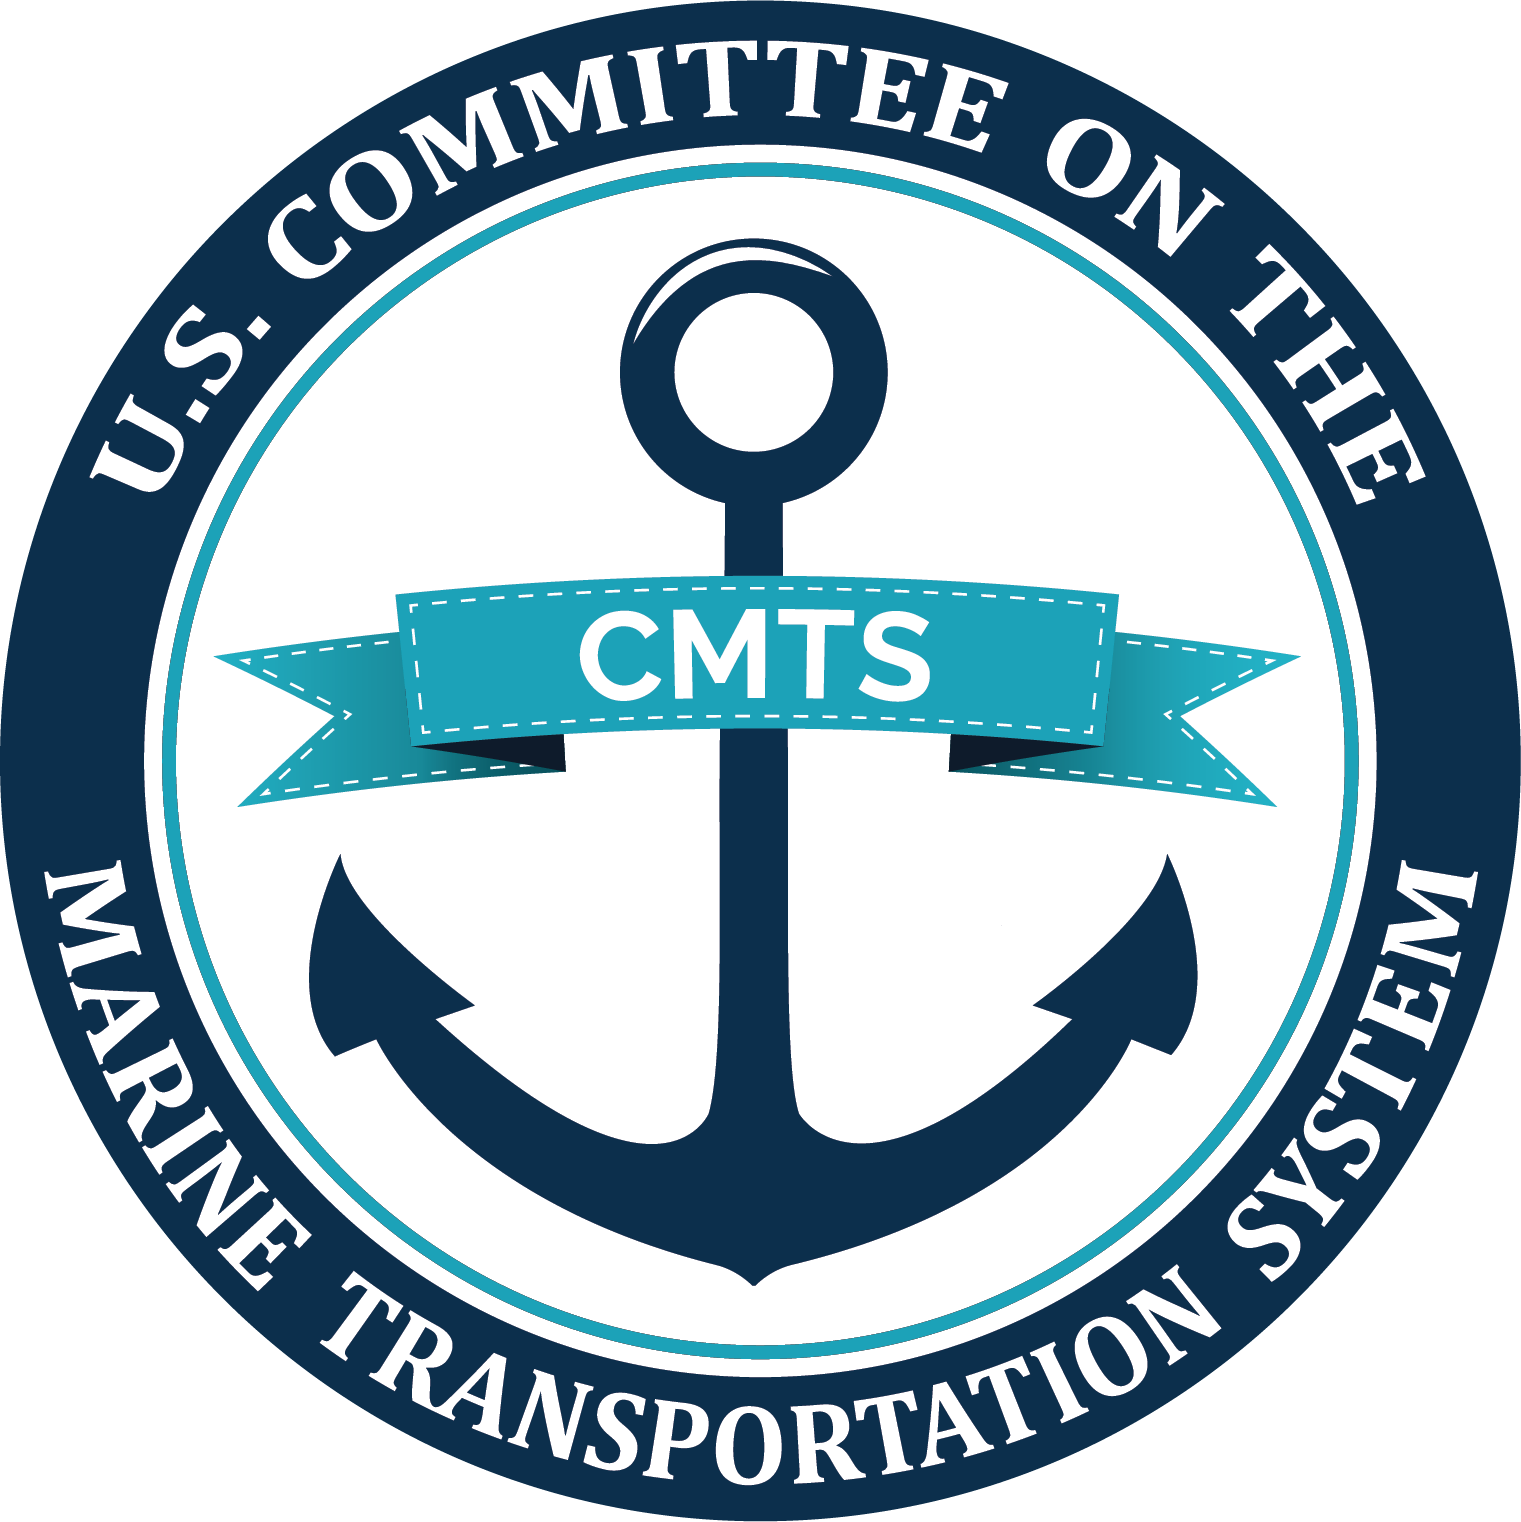 cmts_logo_no_ropes